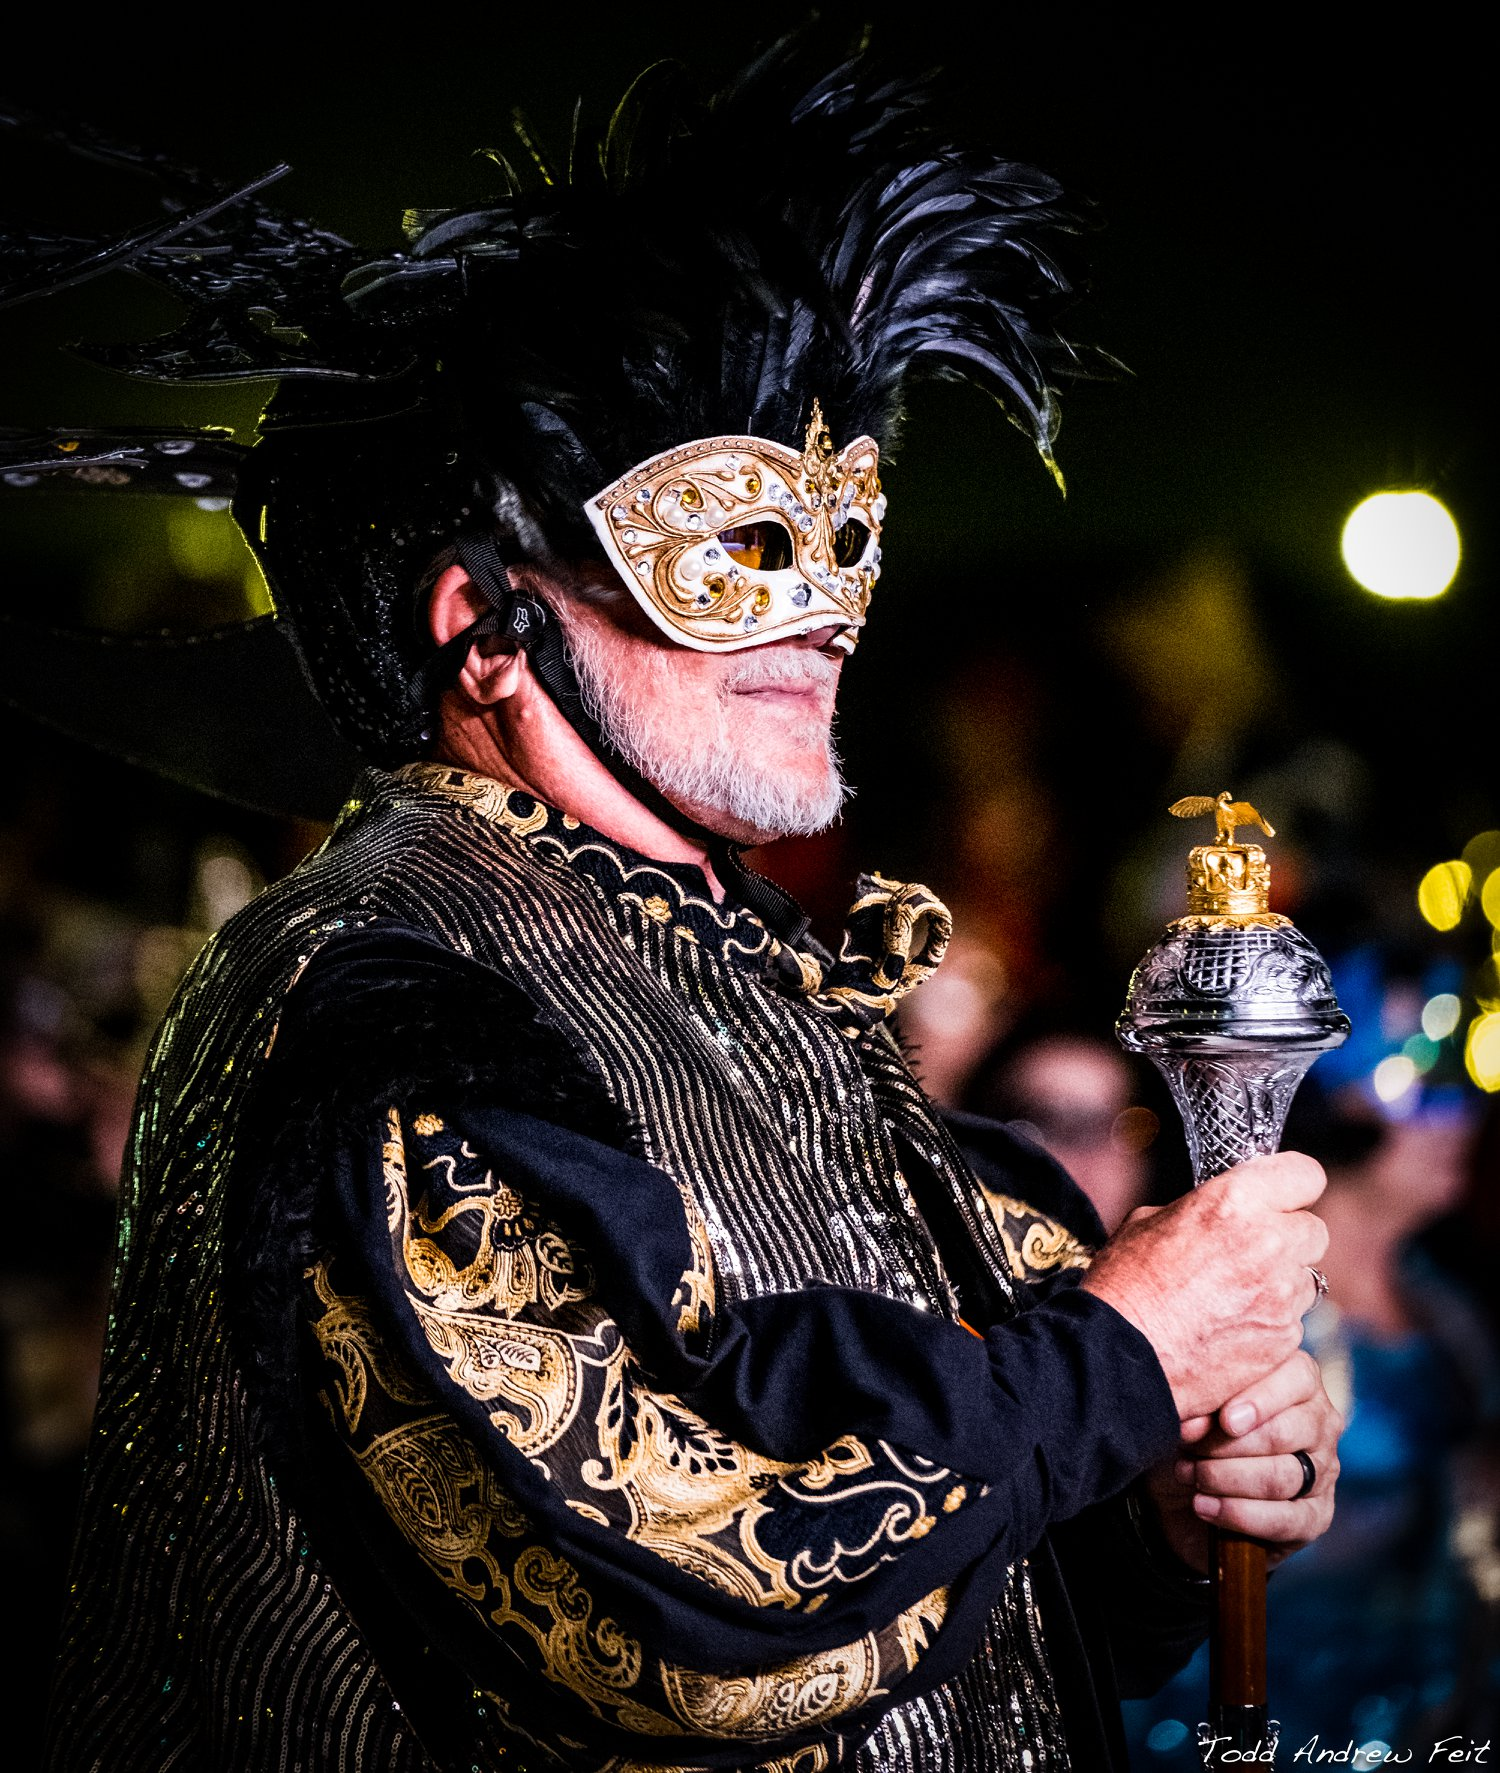 Captain val marmillion - Overseas all day to day business of the Krewe; working closely with co-captains, officers & committee chairs so that all duties are fulfilled